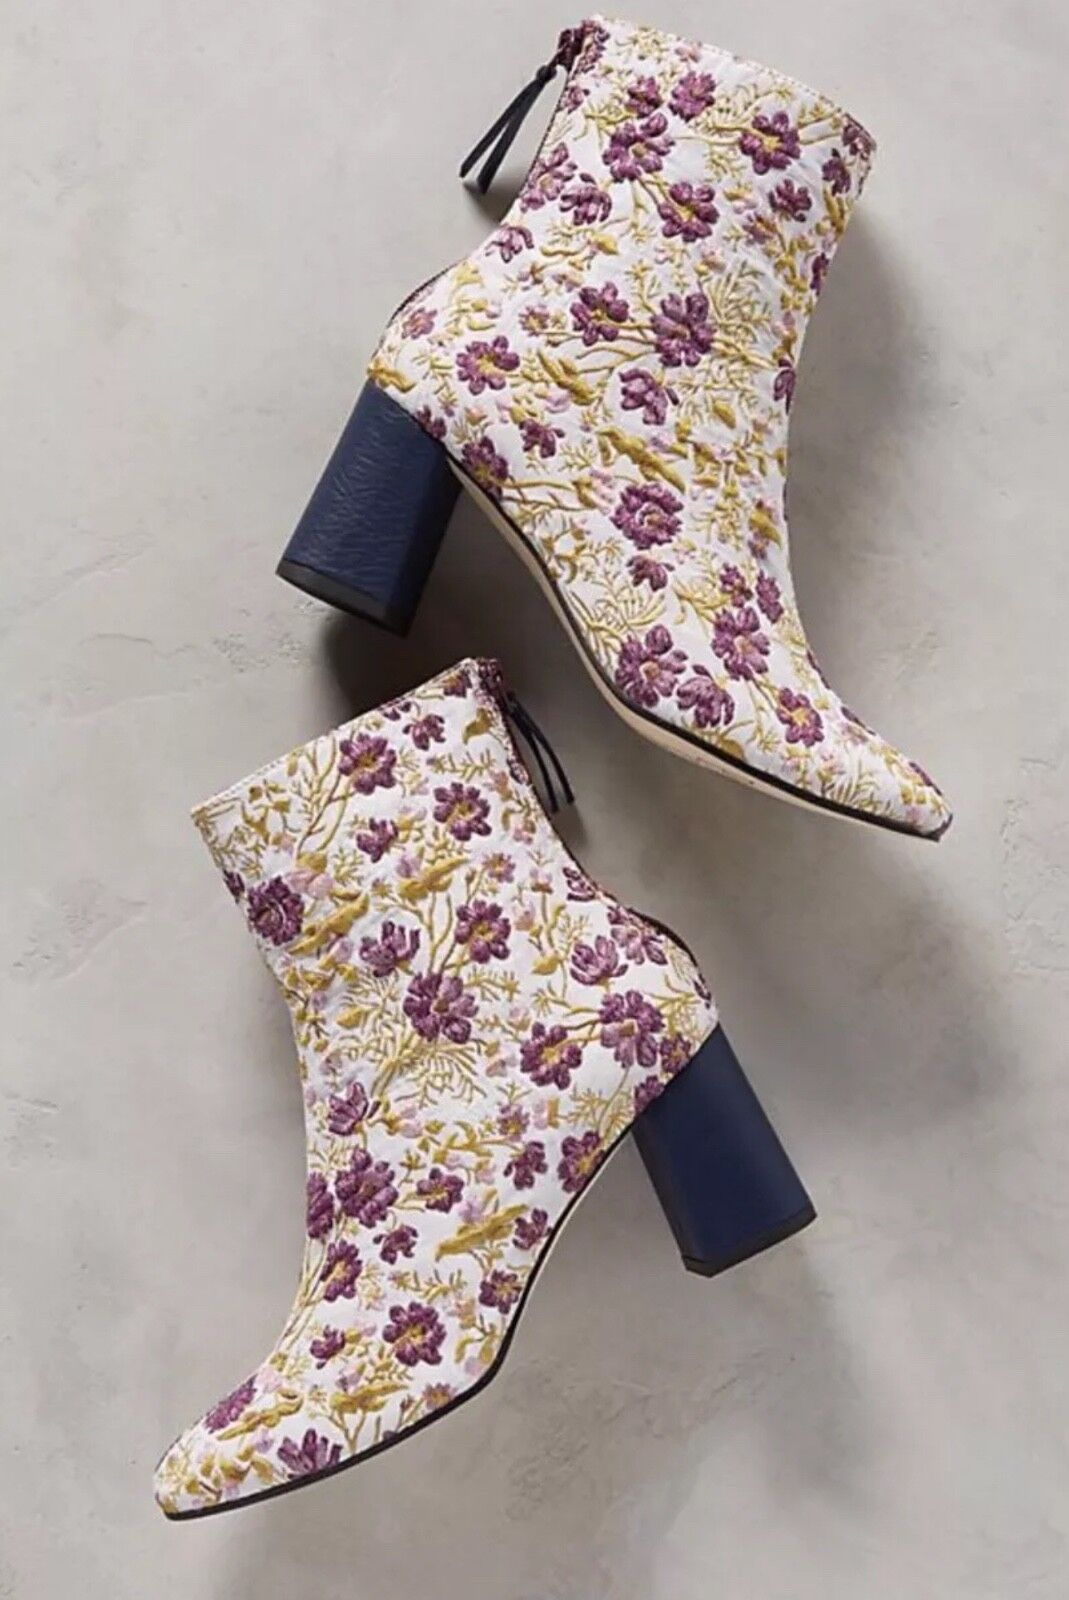 NEW Anthropologie Paco Gil Embroidered Floral Heeled Boots